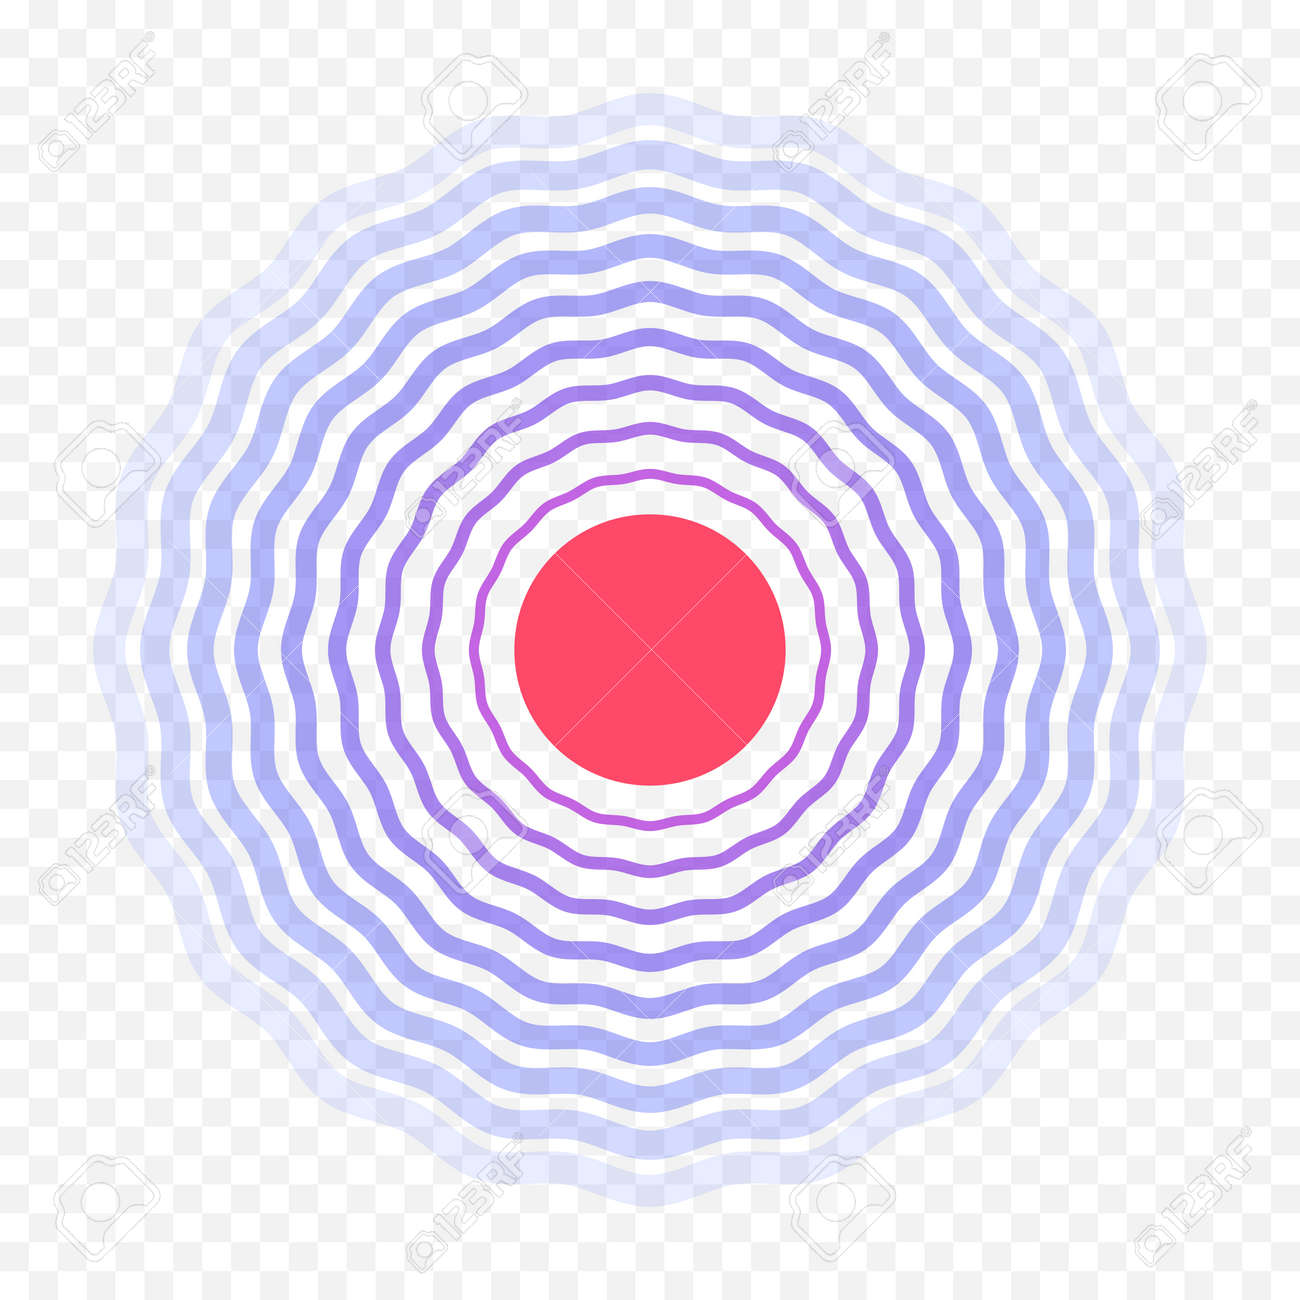 Pain circle red icon for medical painkiller drug medicine or of body or muscular joint pain and head ache analgetic remedy. Vector red circles target spot symbol for pill medication first aid design - 88856010